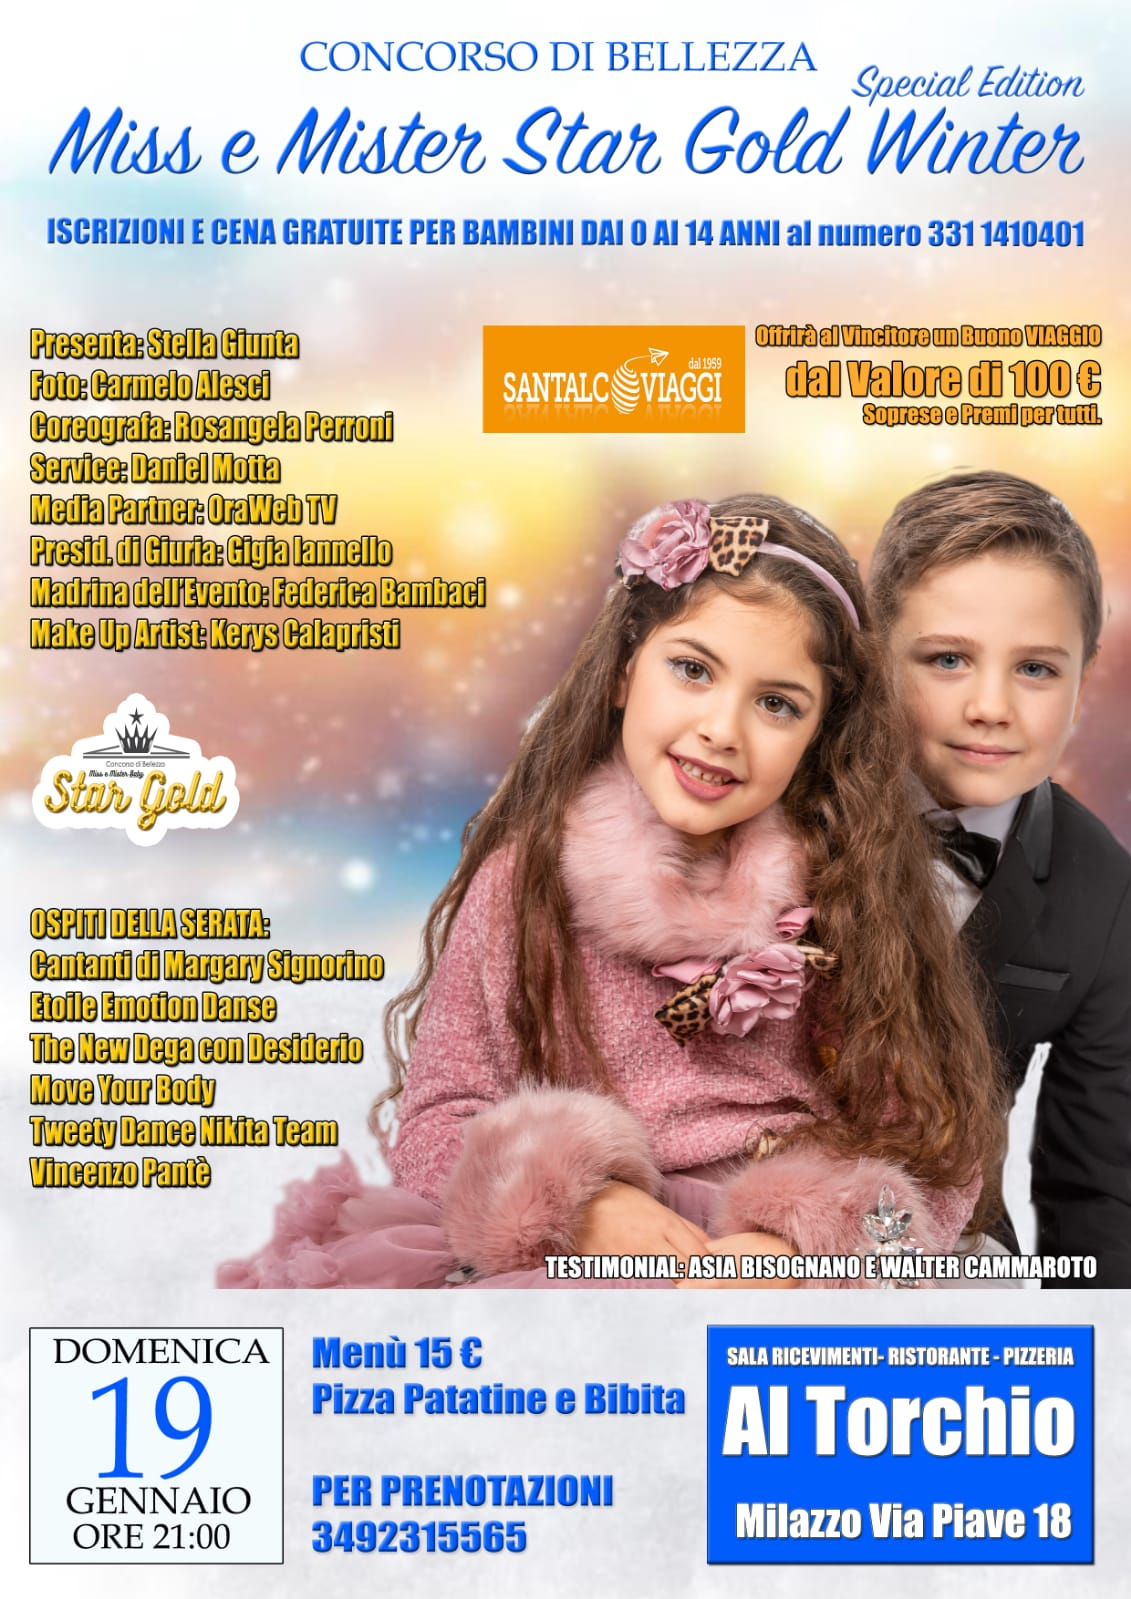 #ConcorsoBambini 'Special Edition Winter' Miss e Mister Star Gold 2020